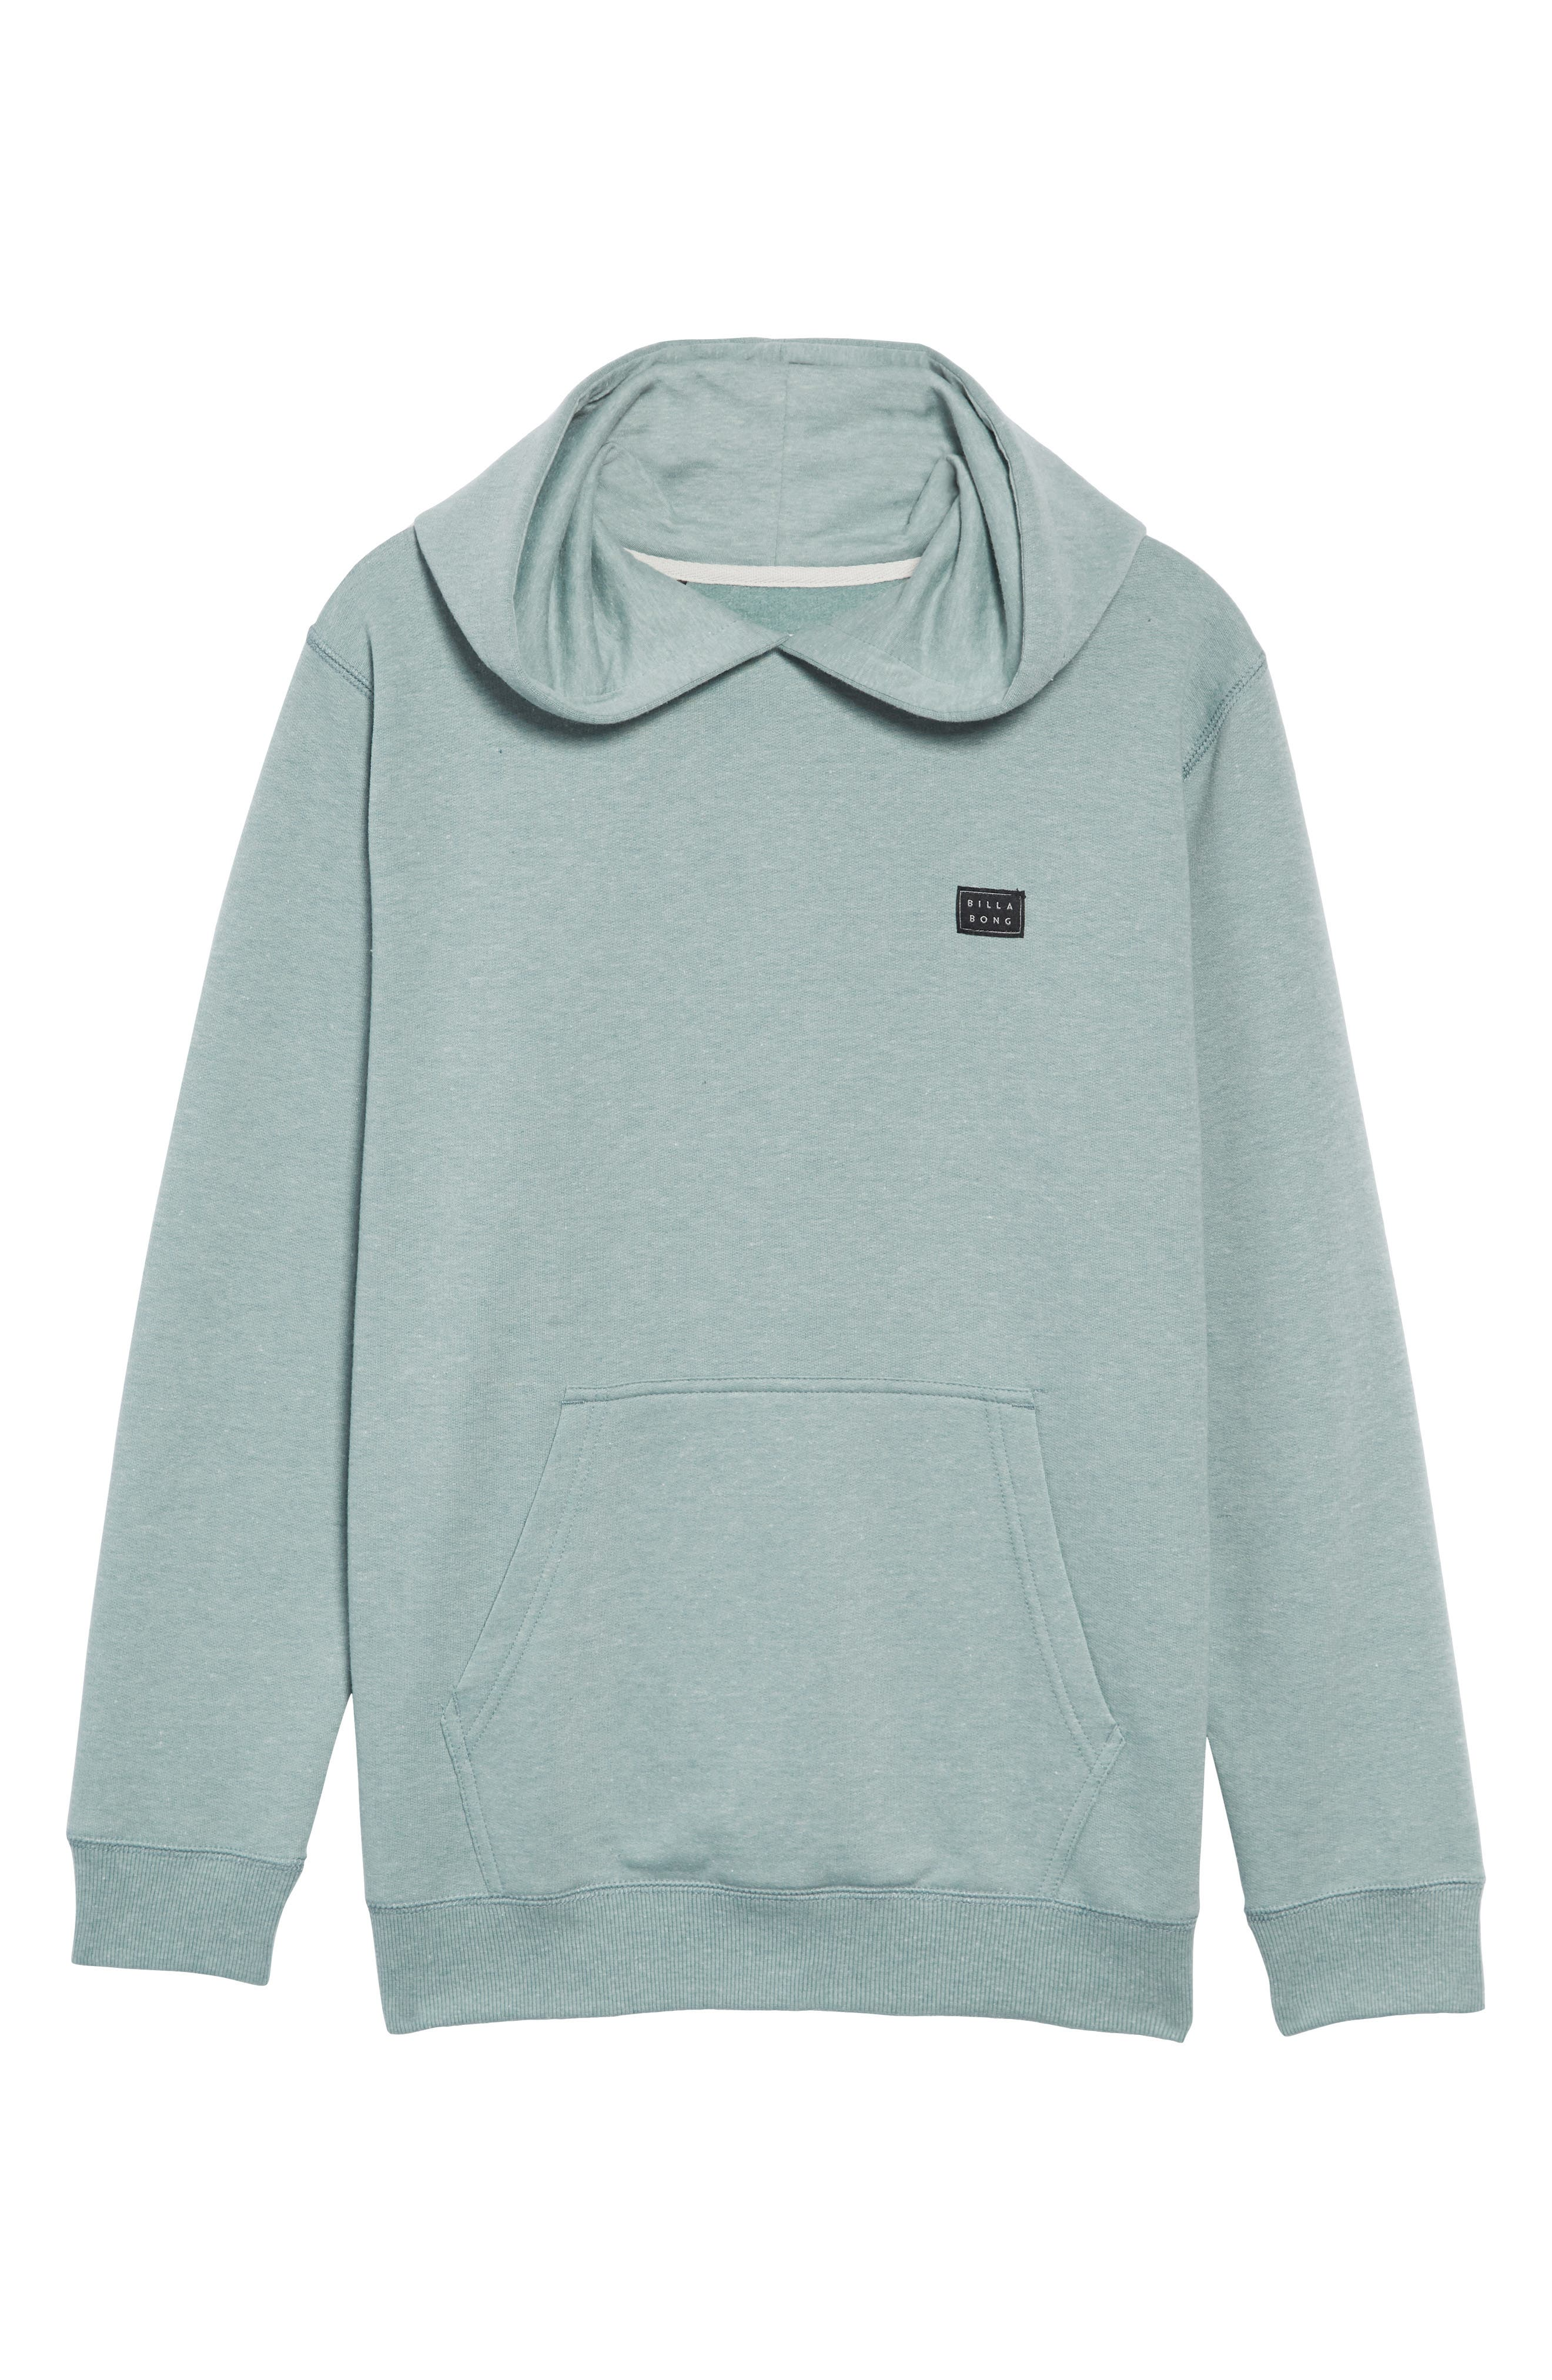 All Day Pullover Hoodie,                             Main thumbnail 1, color,                             DUST GREEN